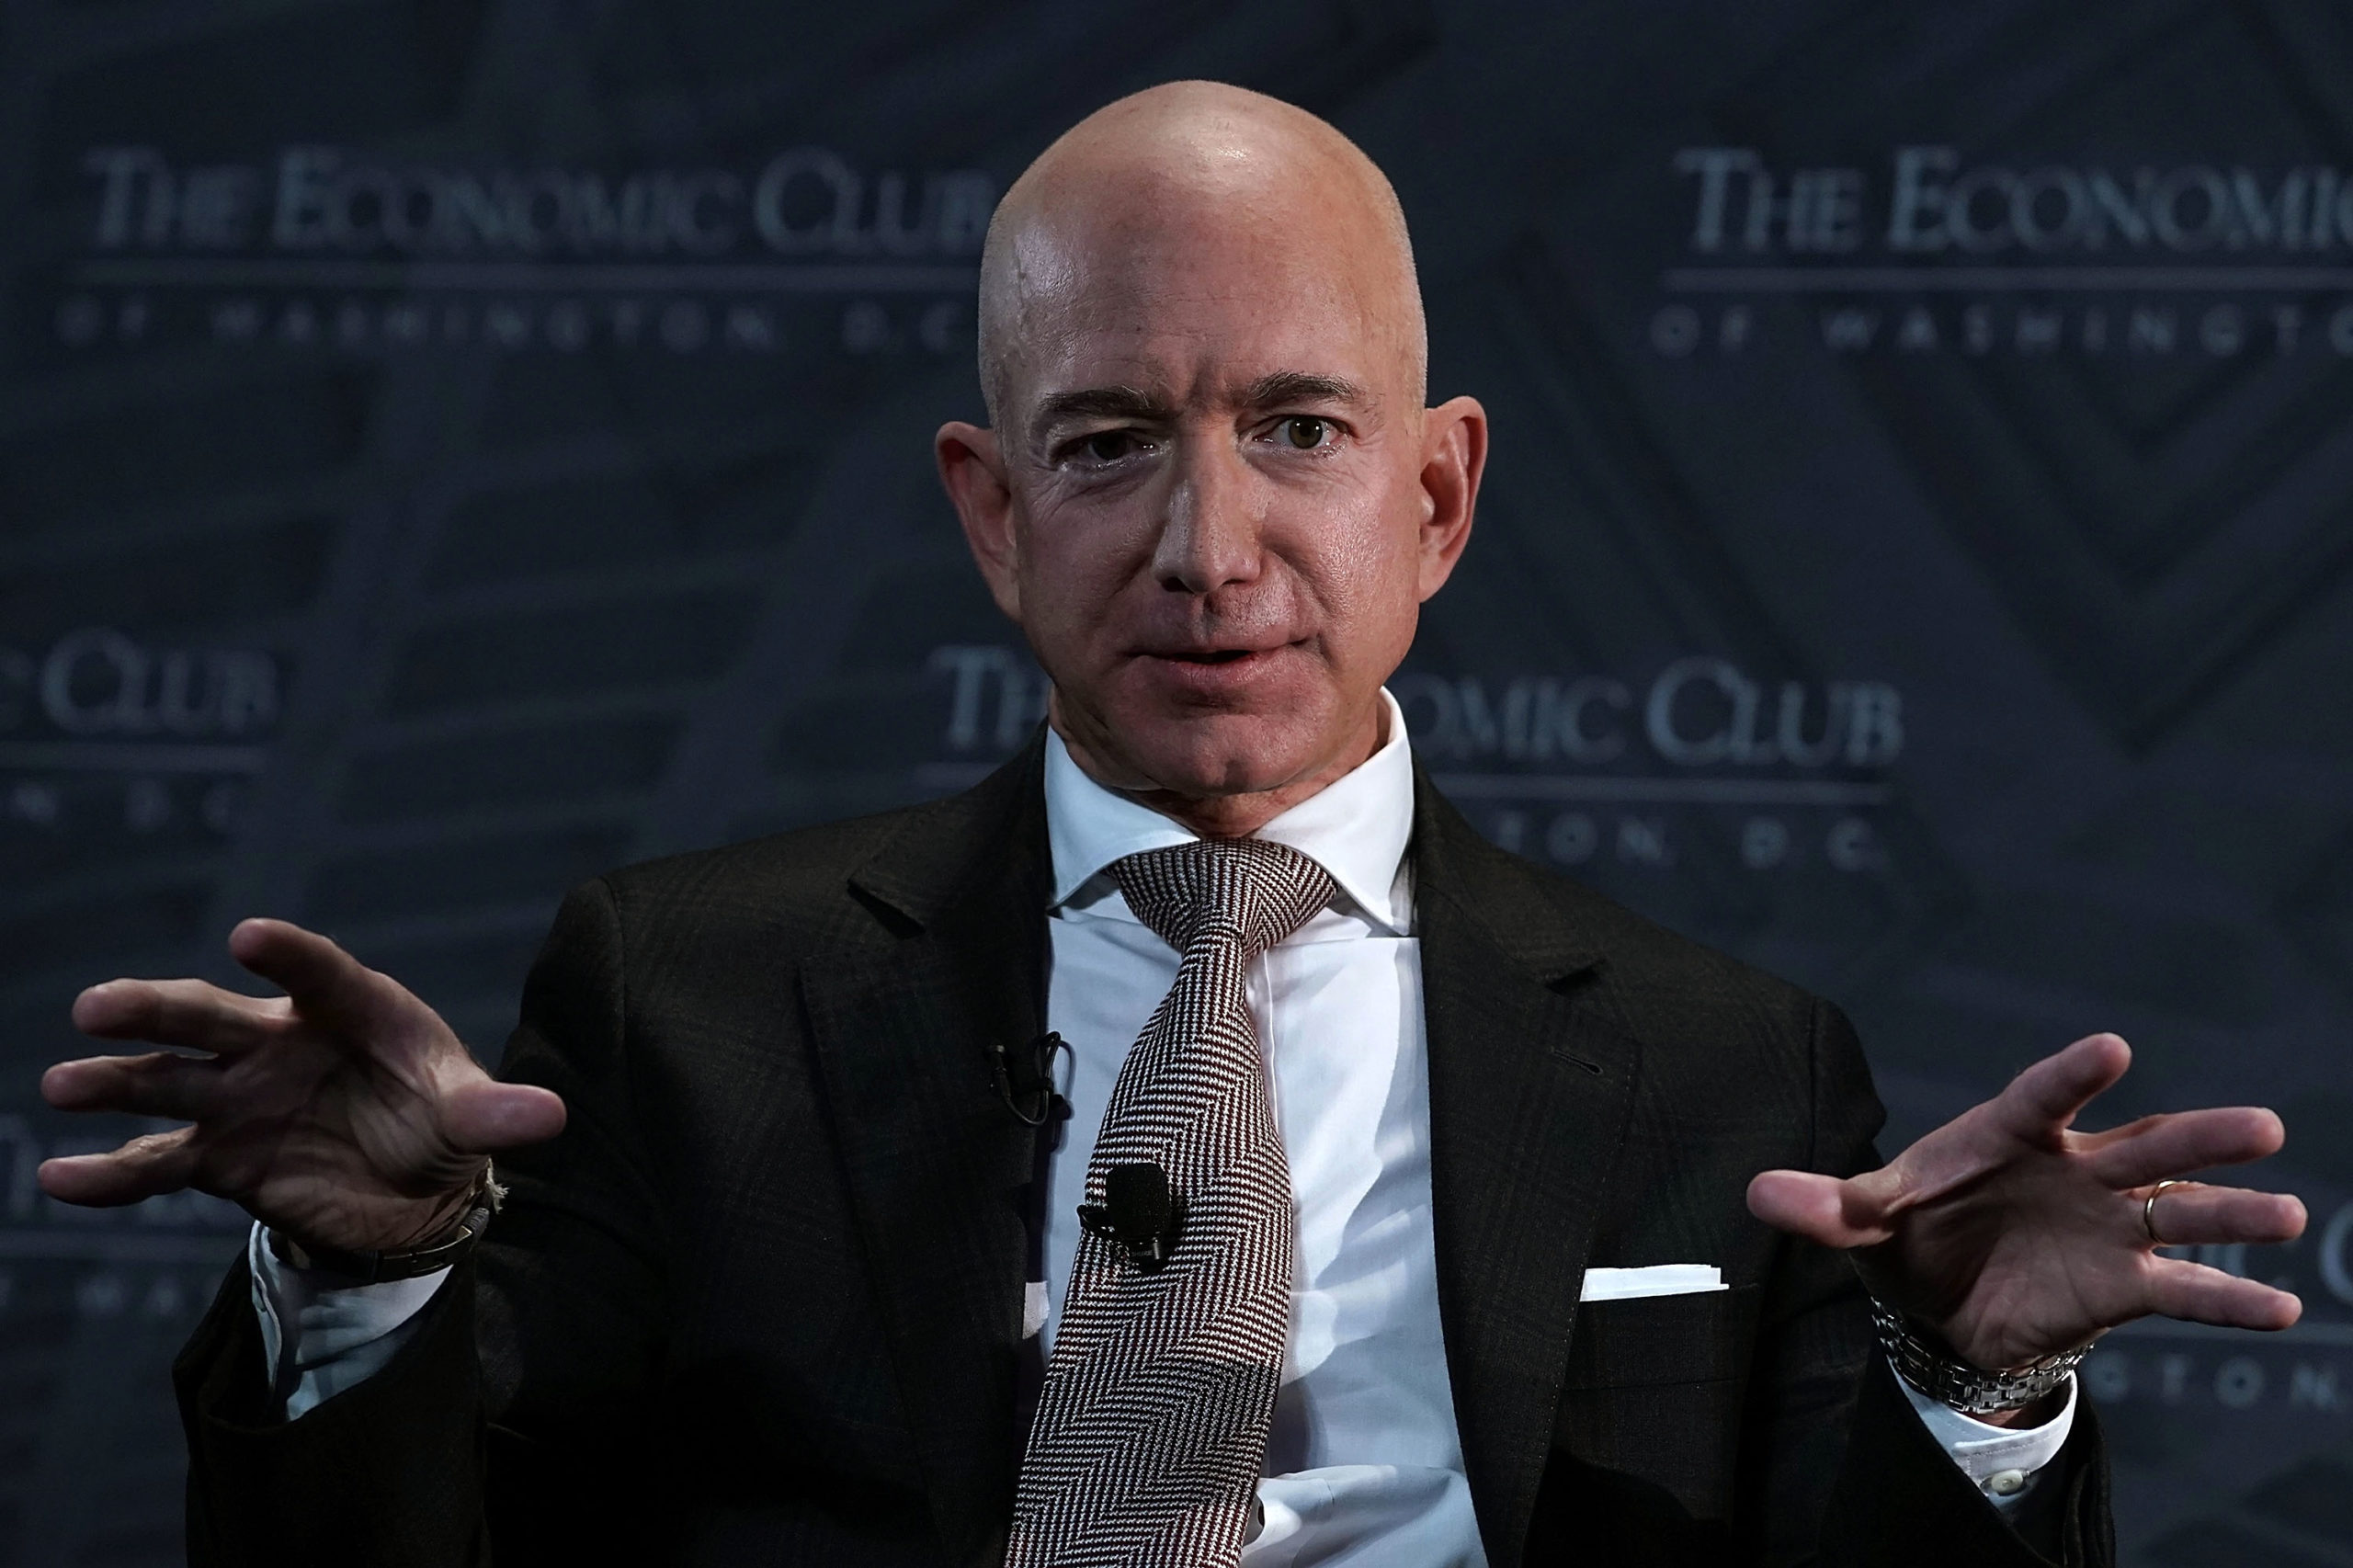 Amazon CEO and founder Jeff Bezos participates in a discussion in 2018 in Washington, D.C. (Alex Wong/Getty Images)